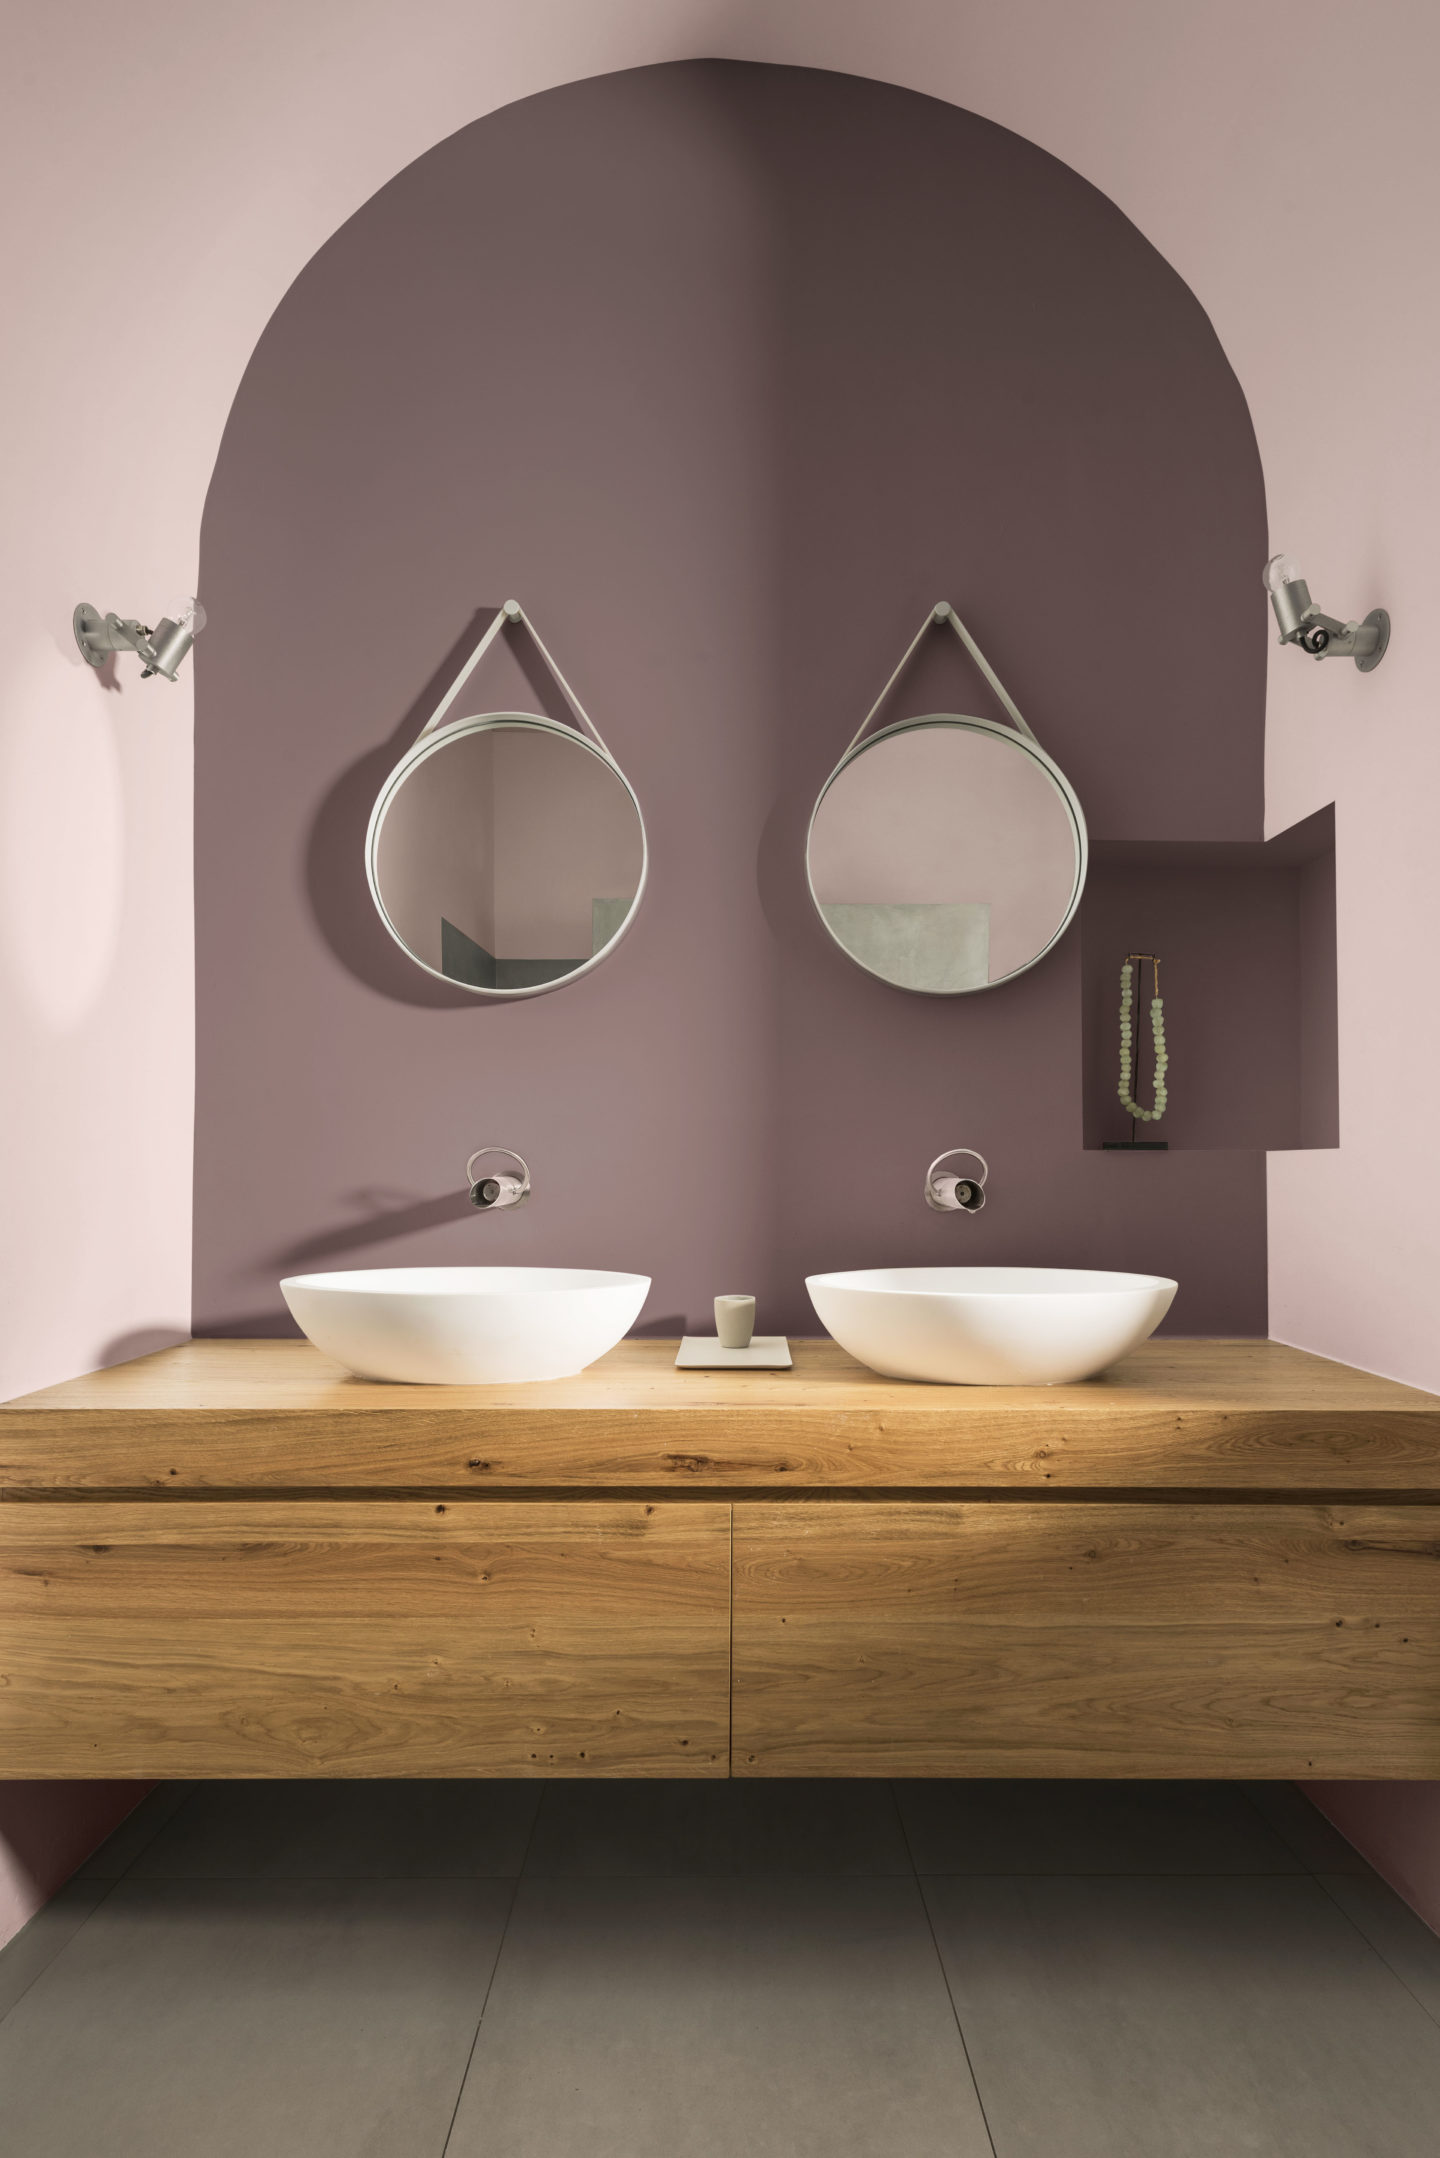 Dulux Colour of the Year - Heart Wood